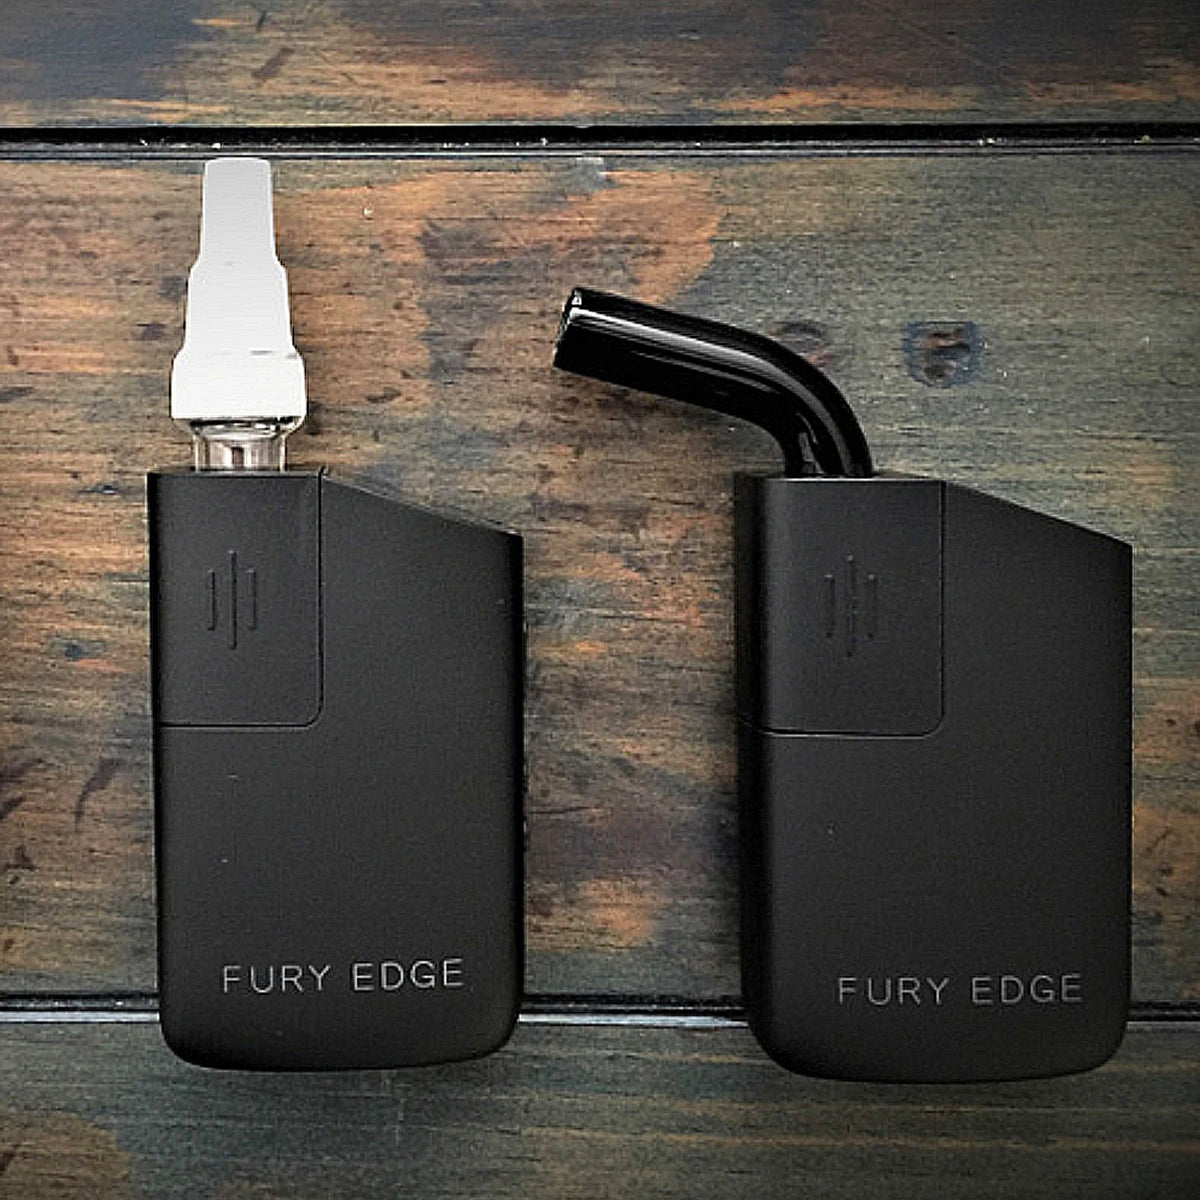 Fury Edge Convection Vaporizer - UK